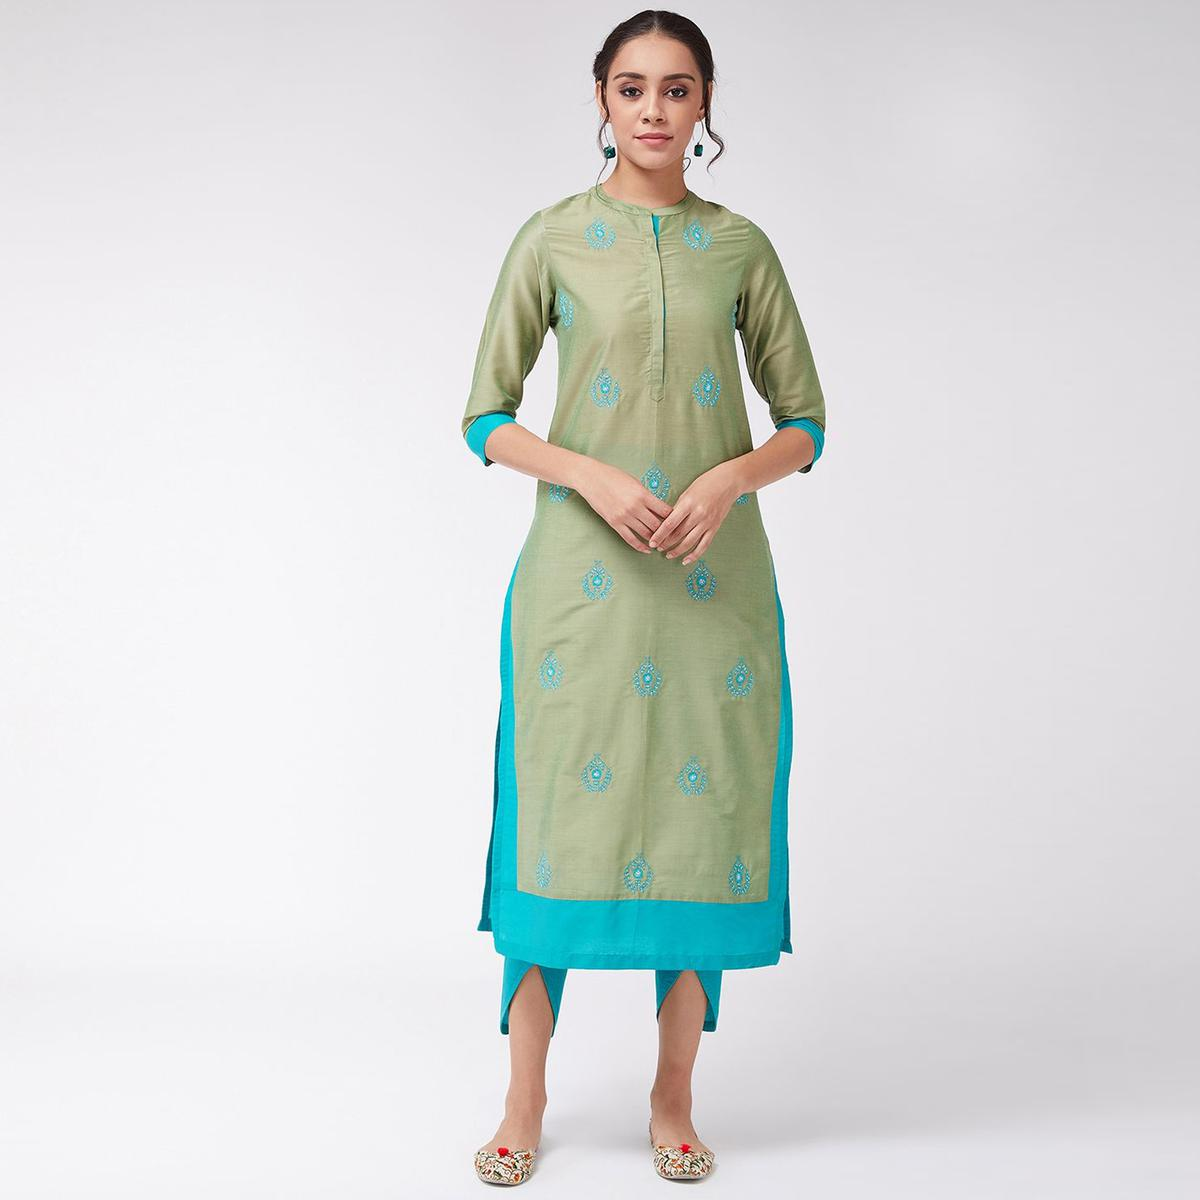 Pannkh - Women's Green Colored Embroidered Side Dual Patch Semi-festive Poly Viscose Kurti